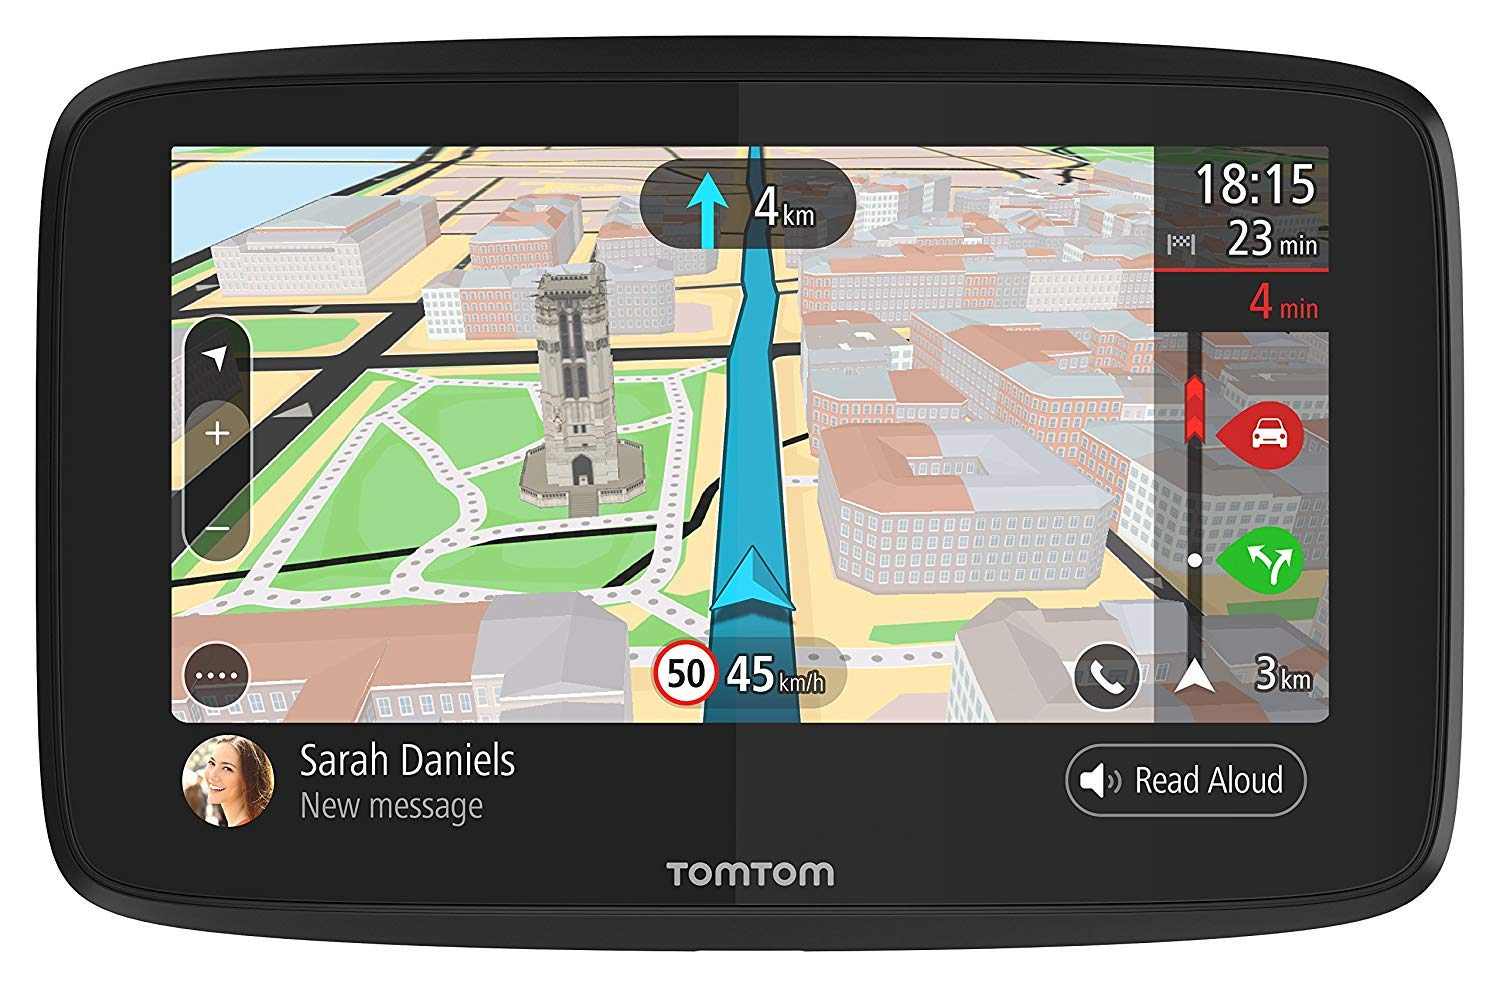 TomTom Navigation WiFi Connectivity Smartphone Hands Free